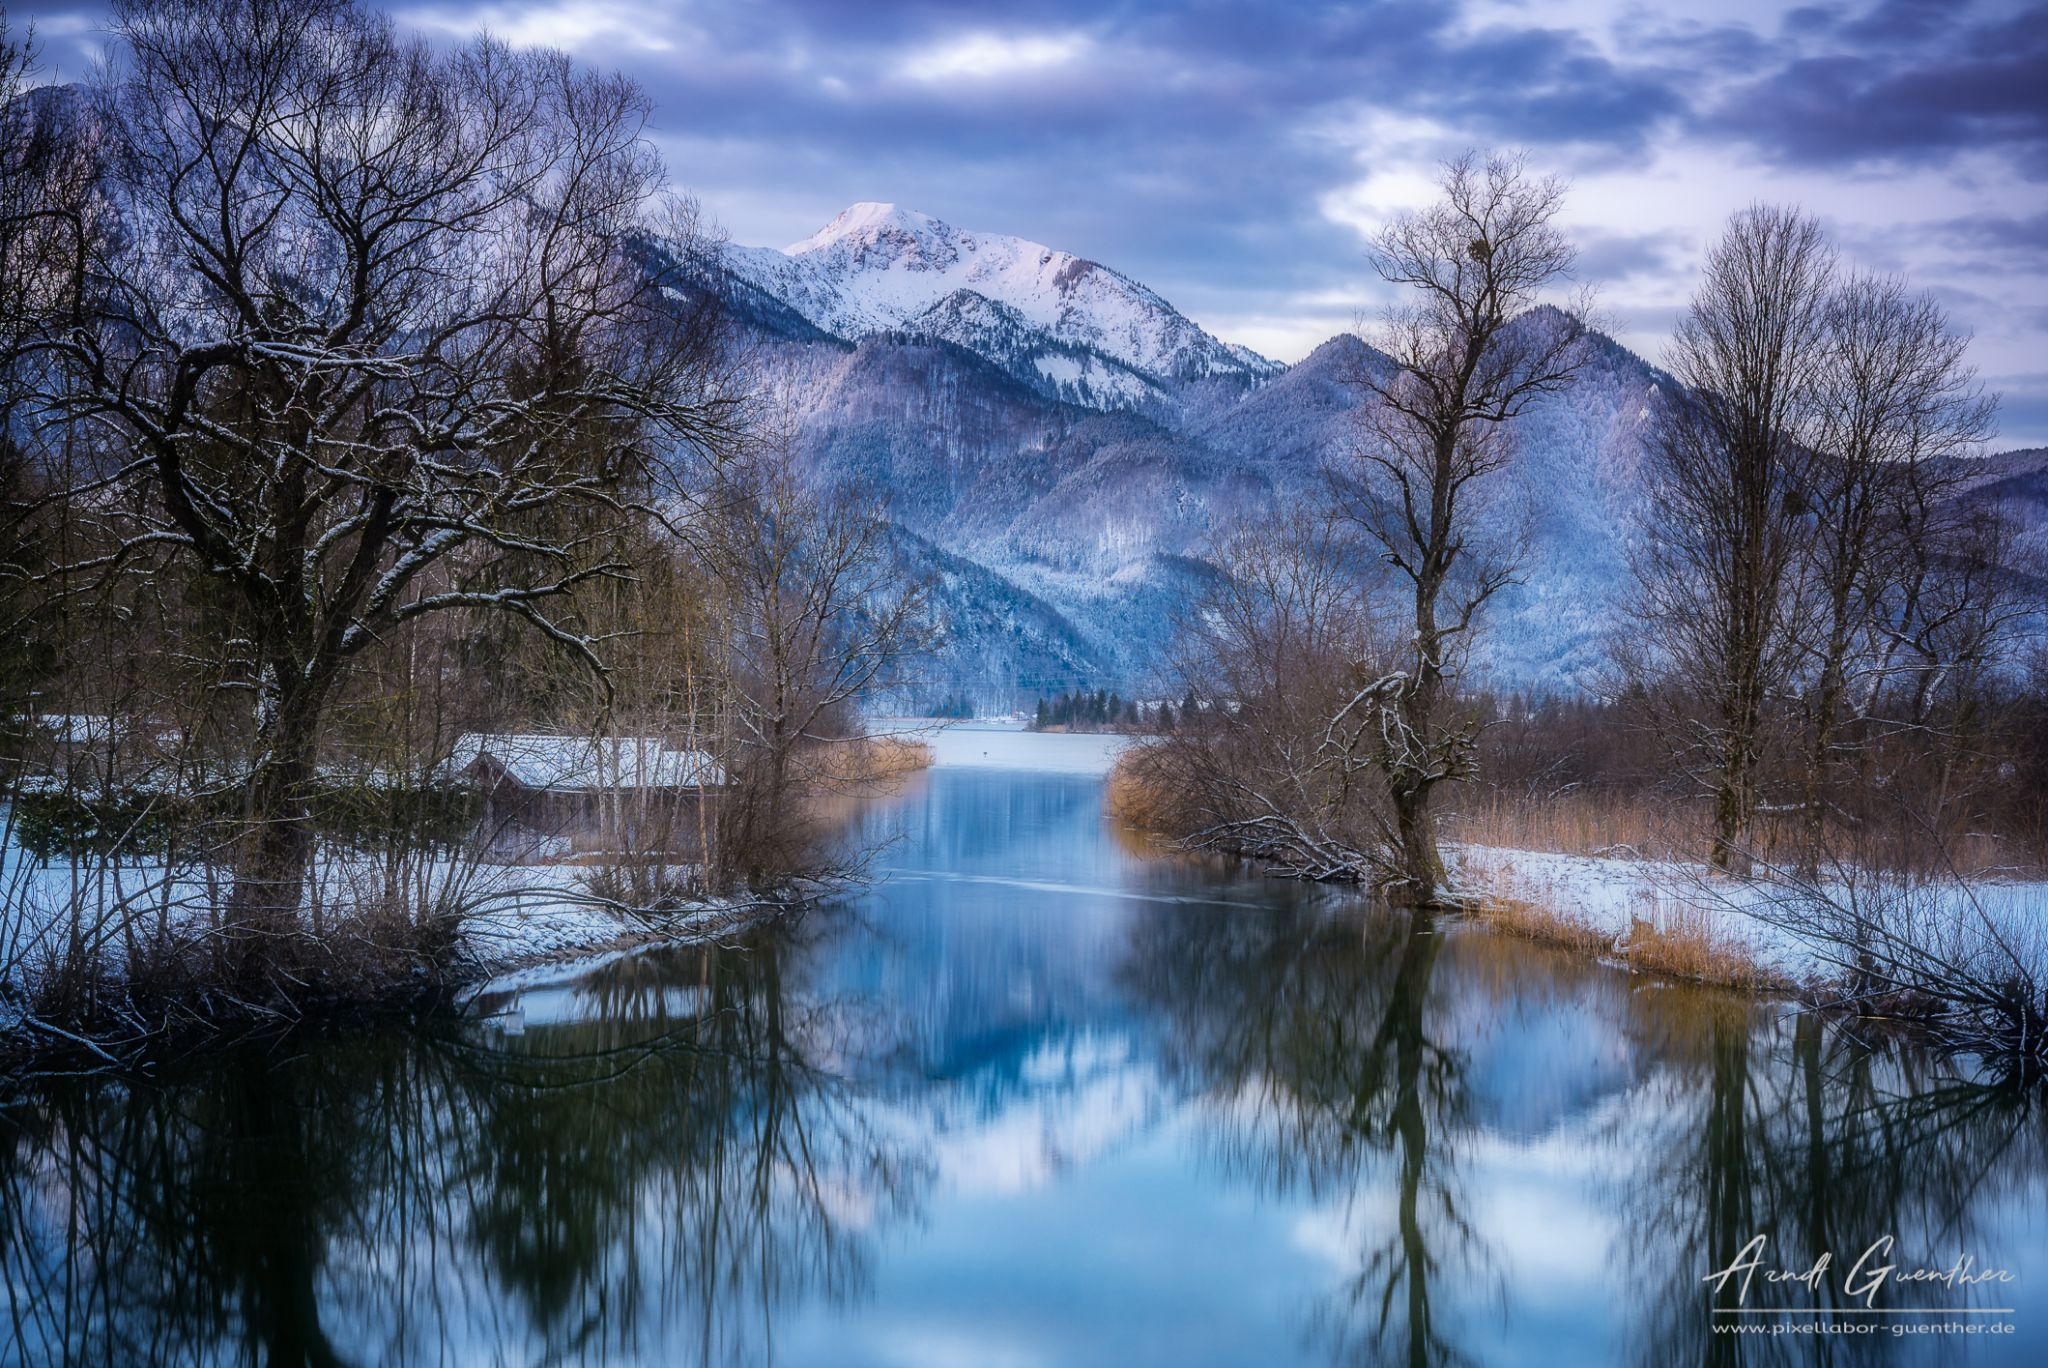 Blue hour at Kochelsee, Germany